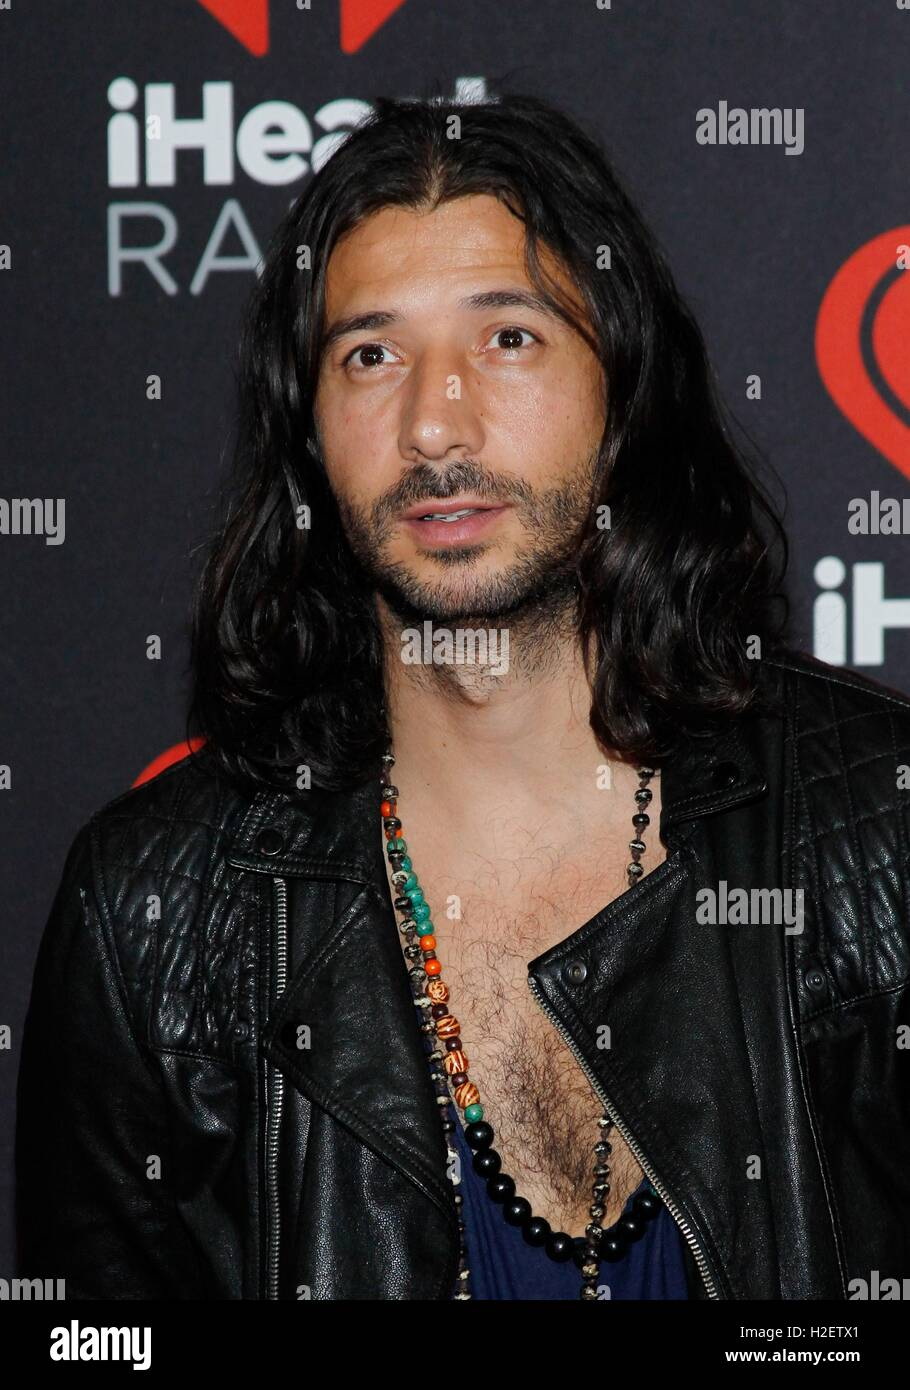 Nasri of Magic! at arrivals for 2016 iHeartRadio Music Festival